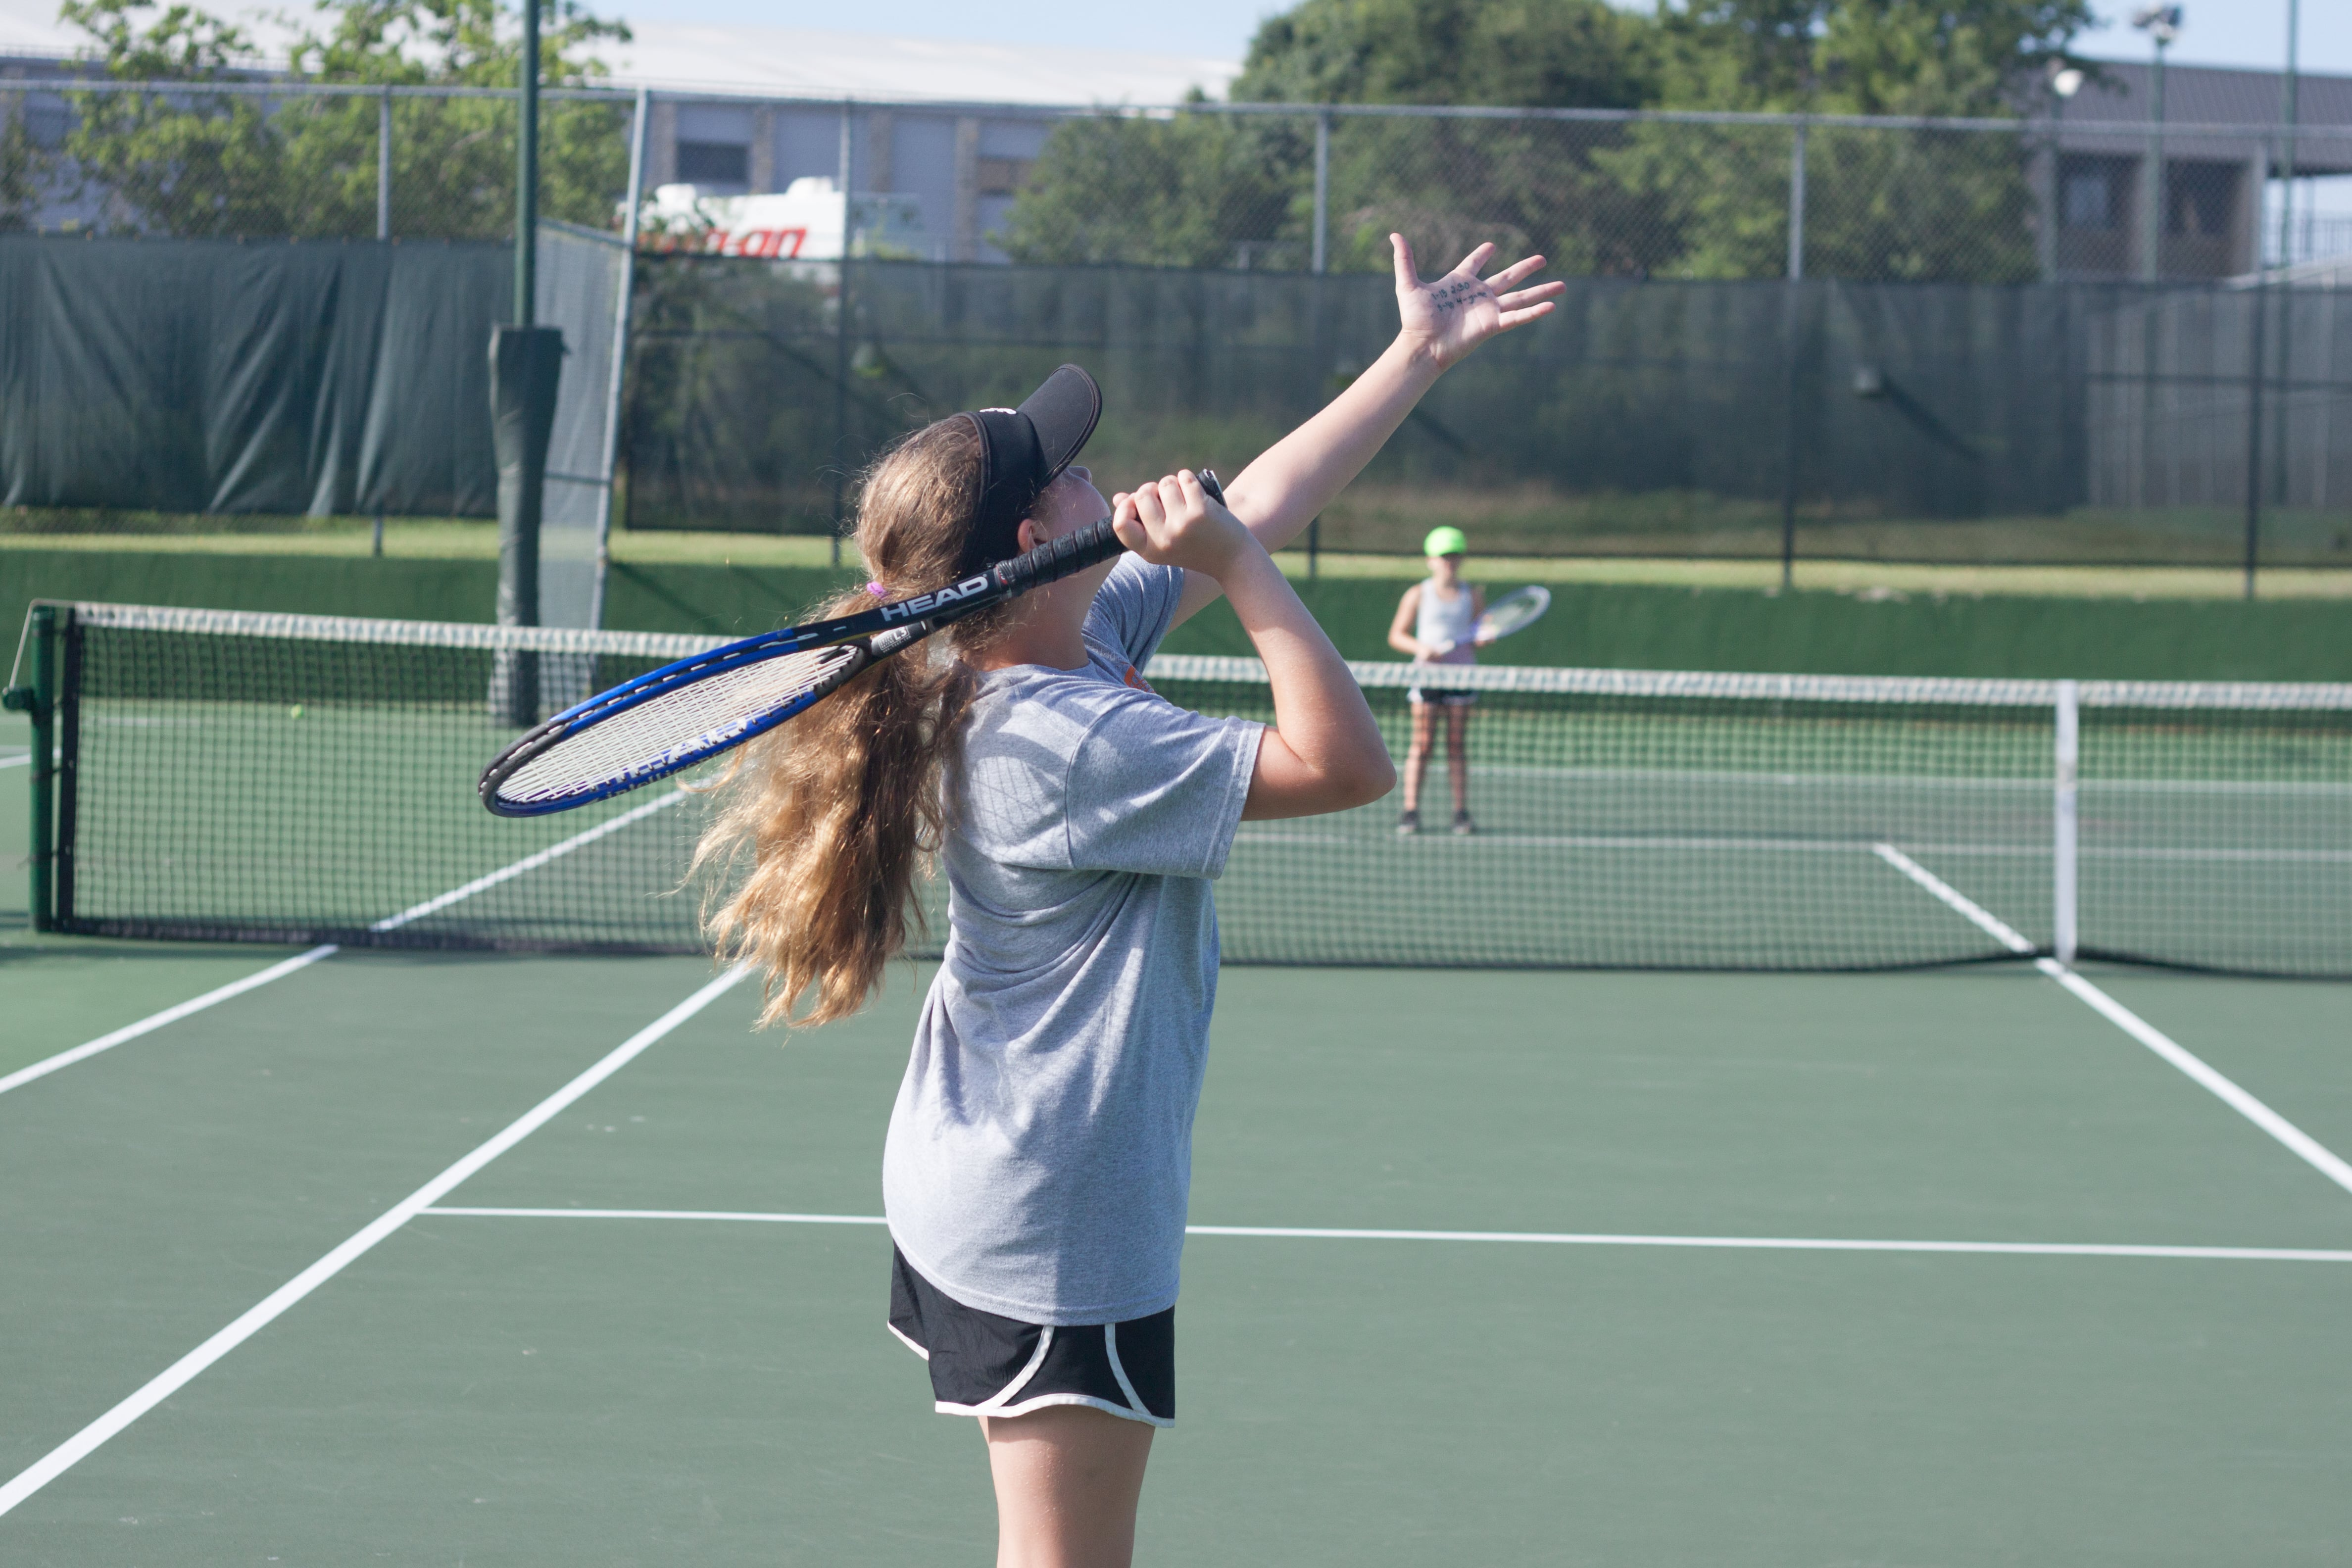 Girls playing tennis. Girl in the foreground is tossing the tennis ball into the air to prepare to serve.